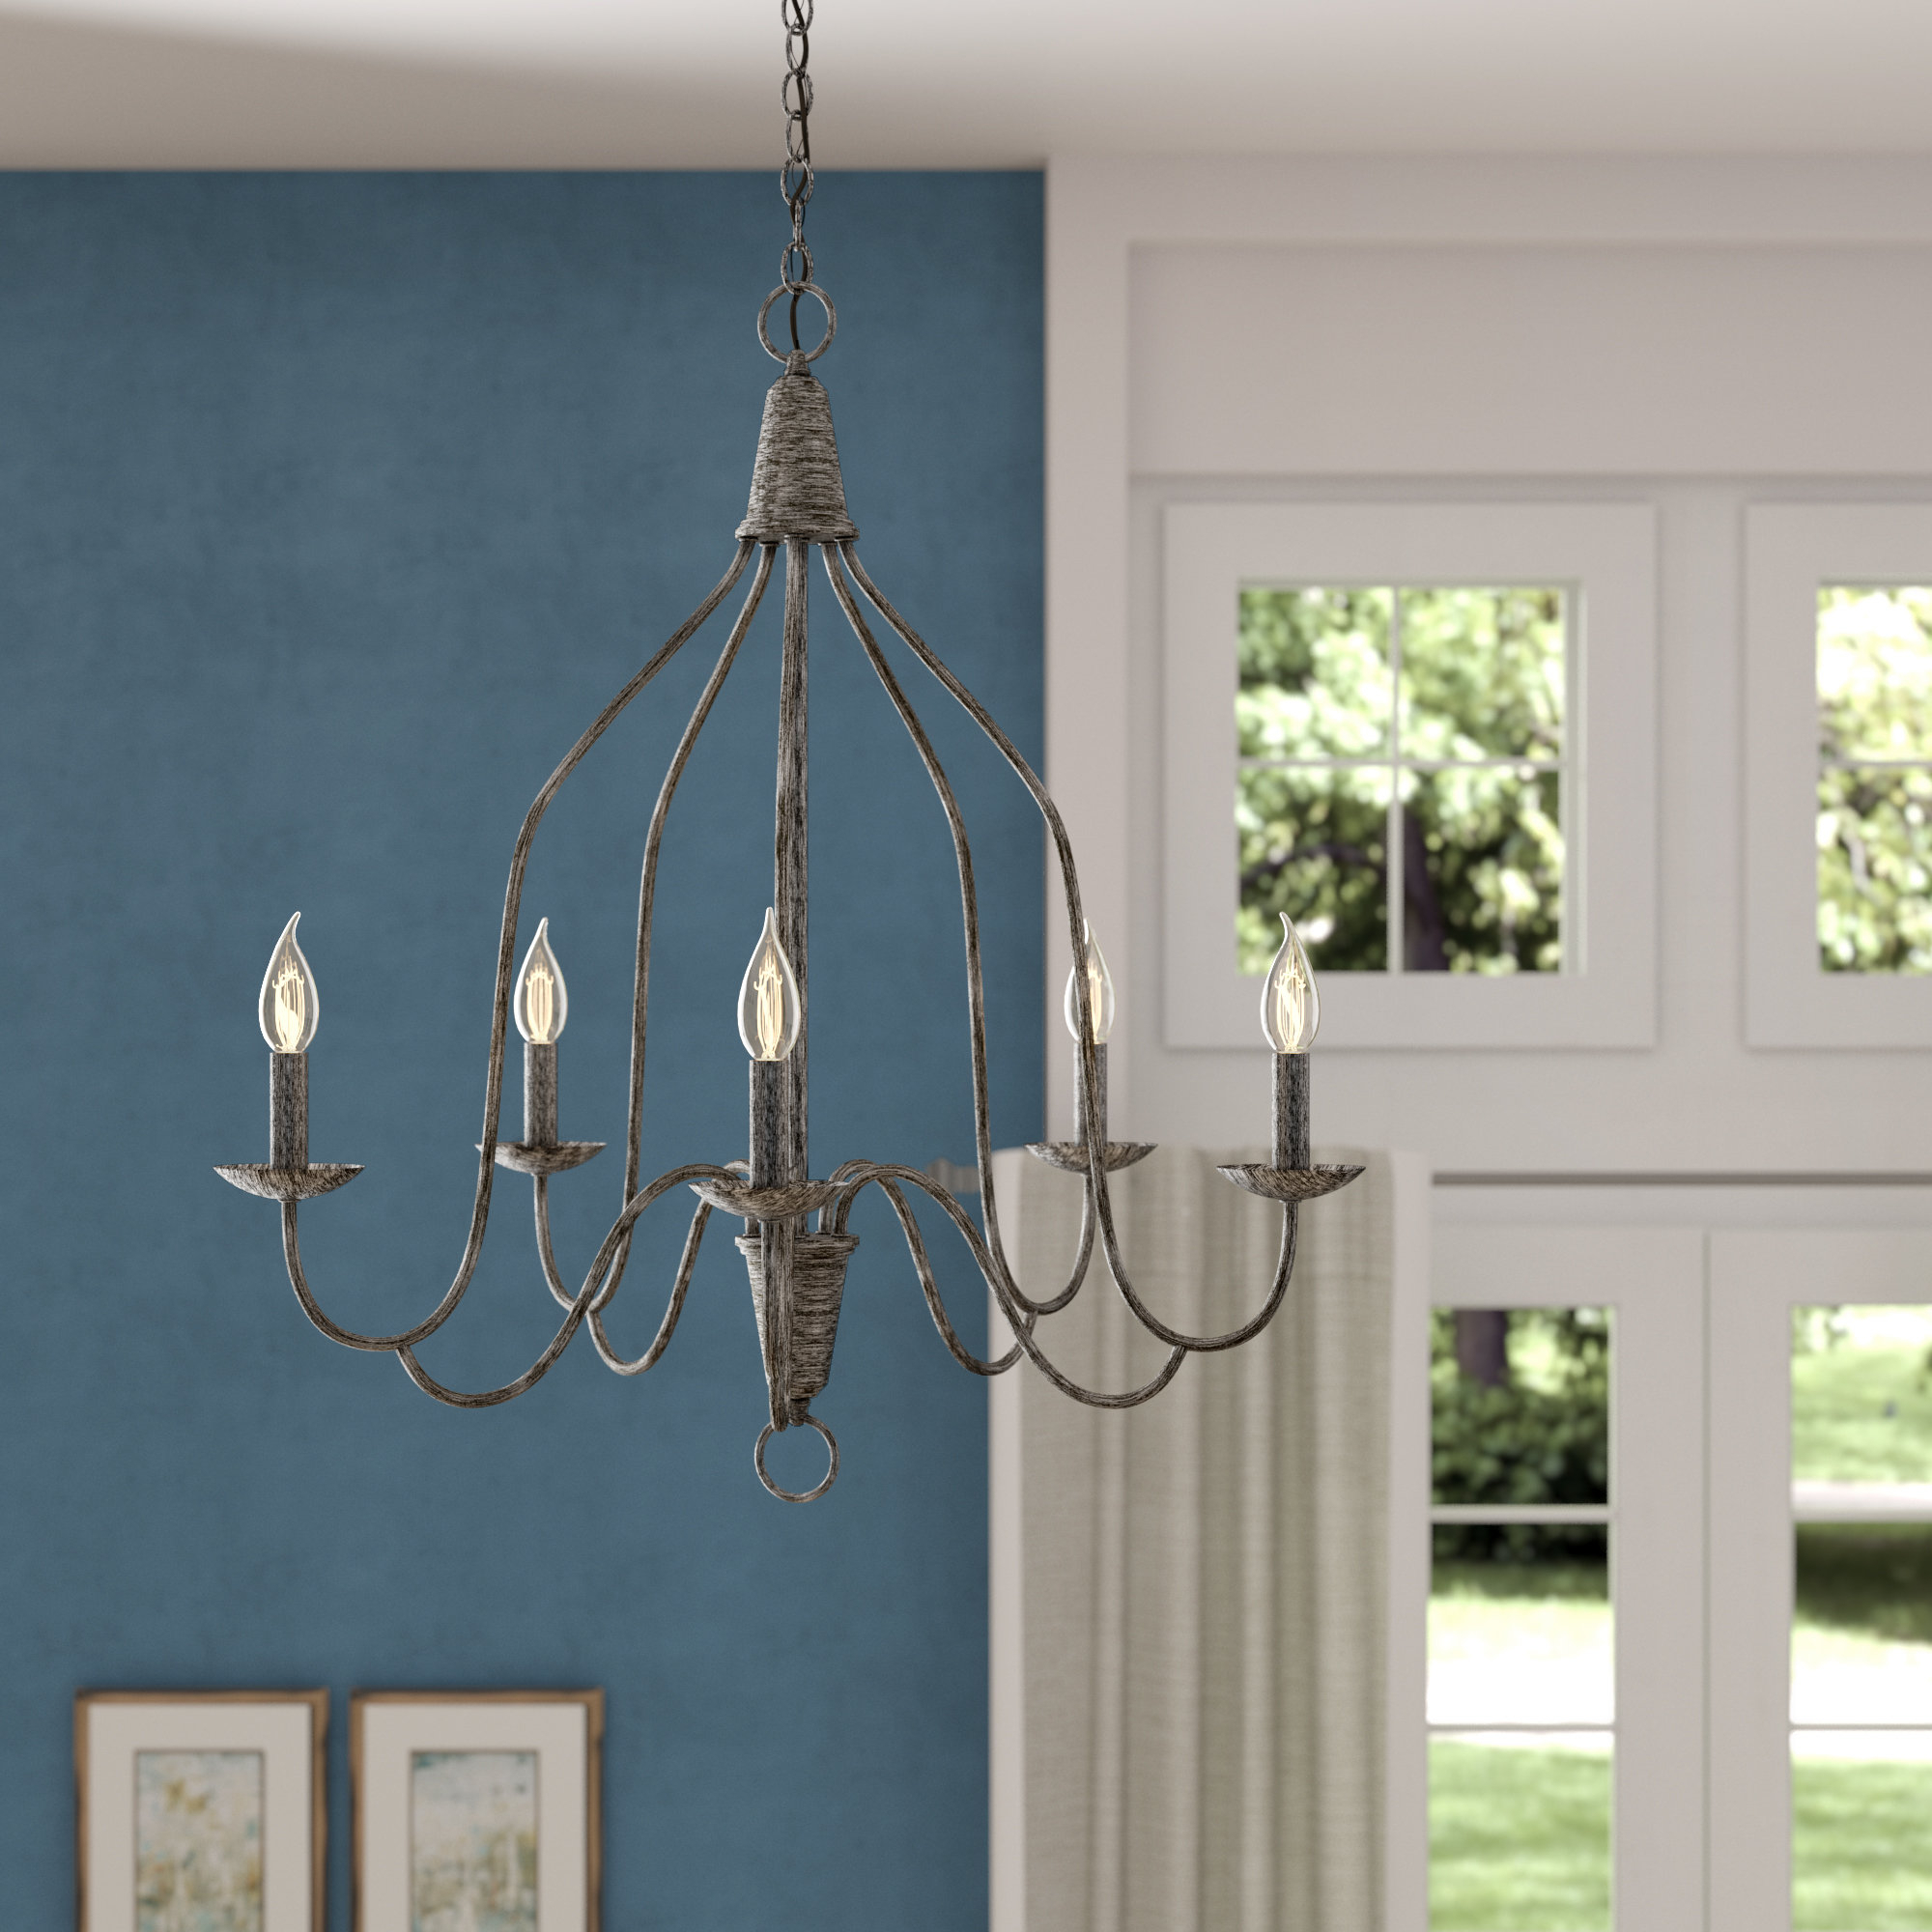 Most Recently Released Geeta 5 Light Candle Style Chandelier Inside Berger 5 Light Candle Style Chandeliers (View 11 of 20)